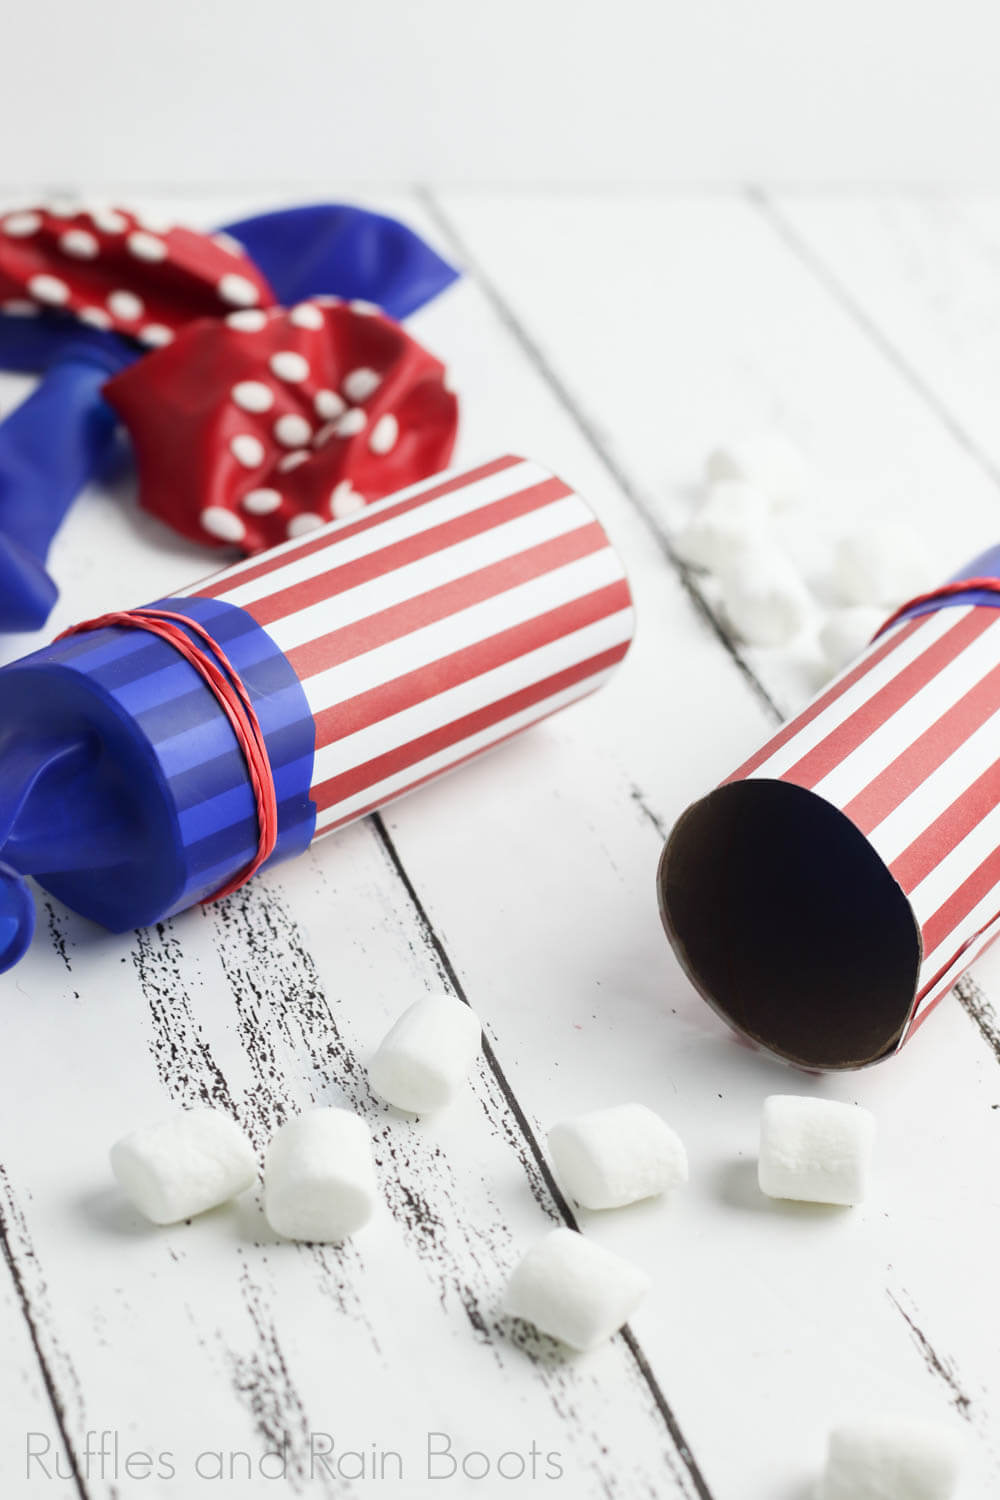 two marshmallow launchers on a wooden board as independence day party ideas for kids